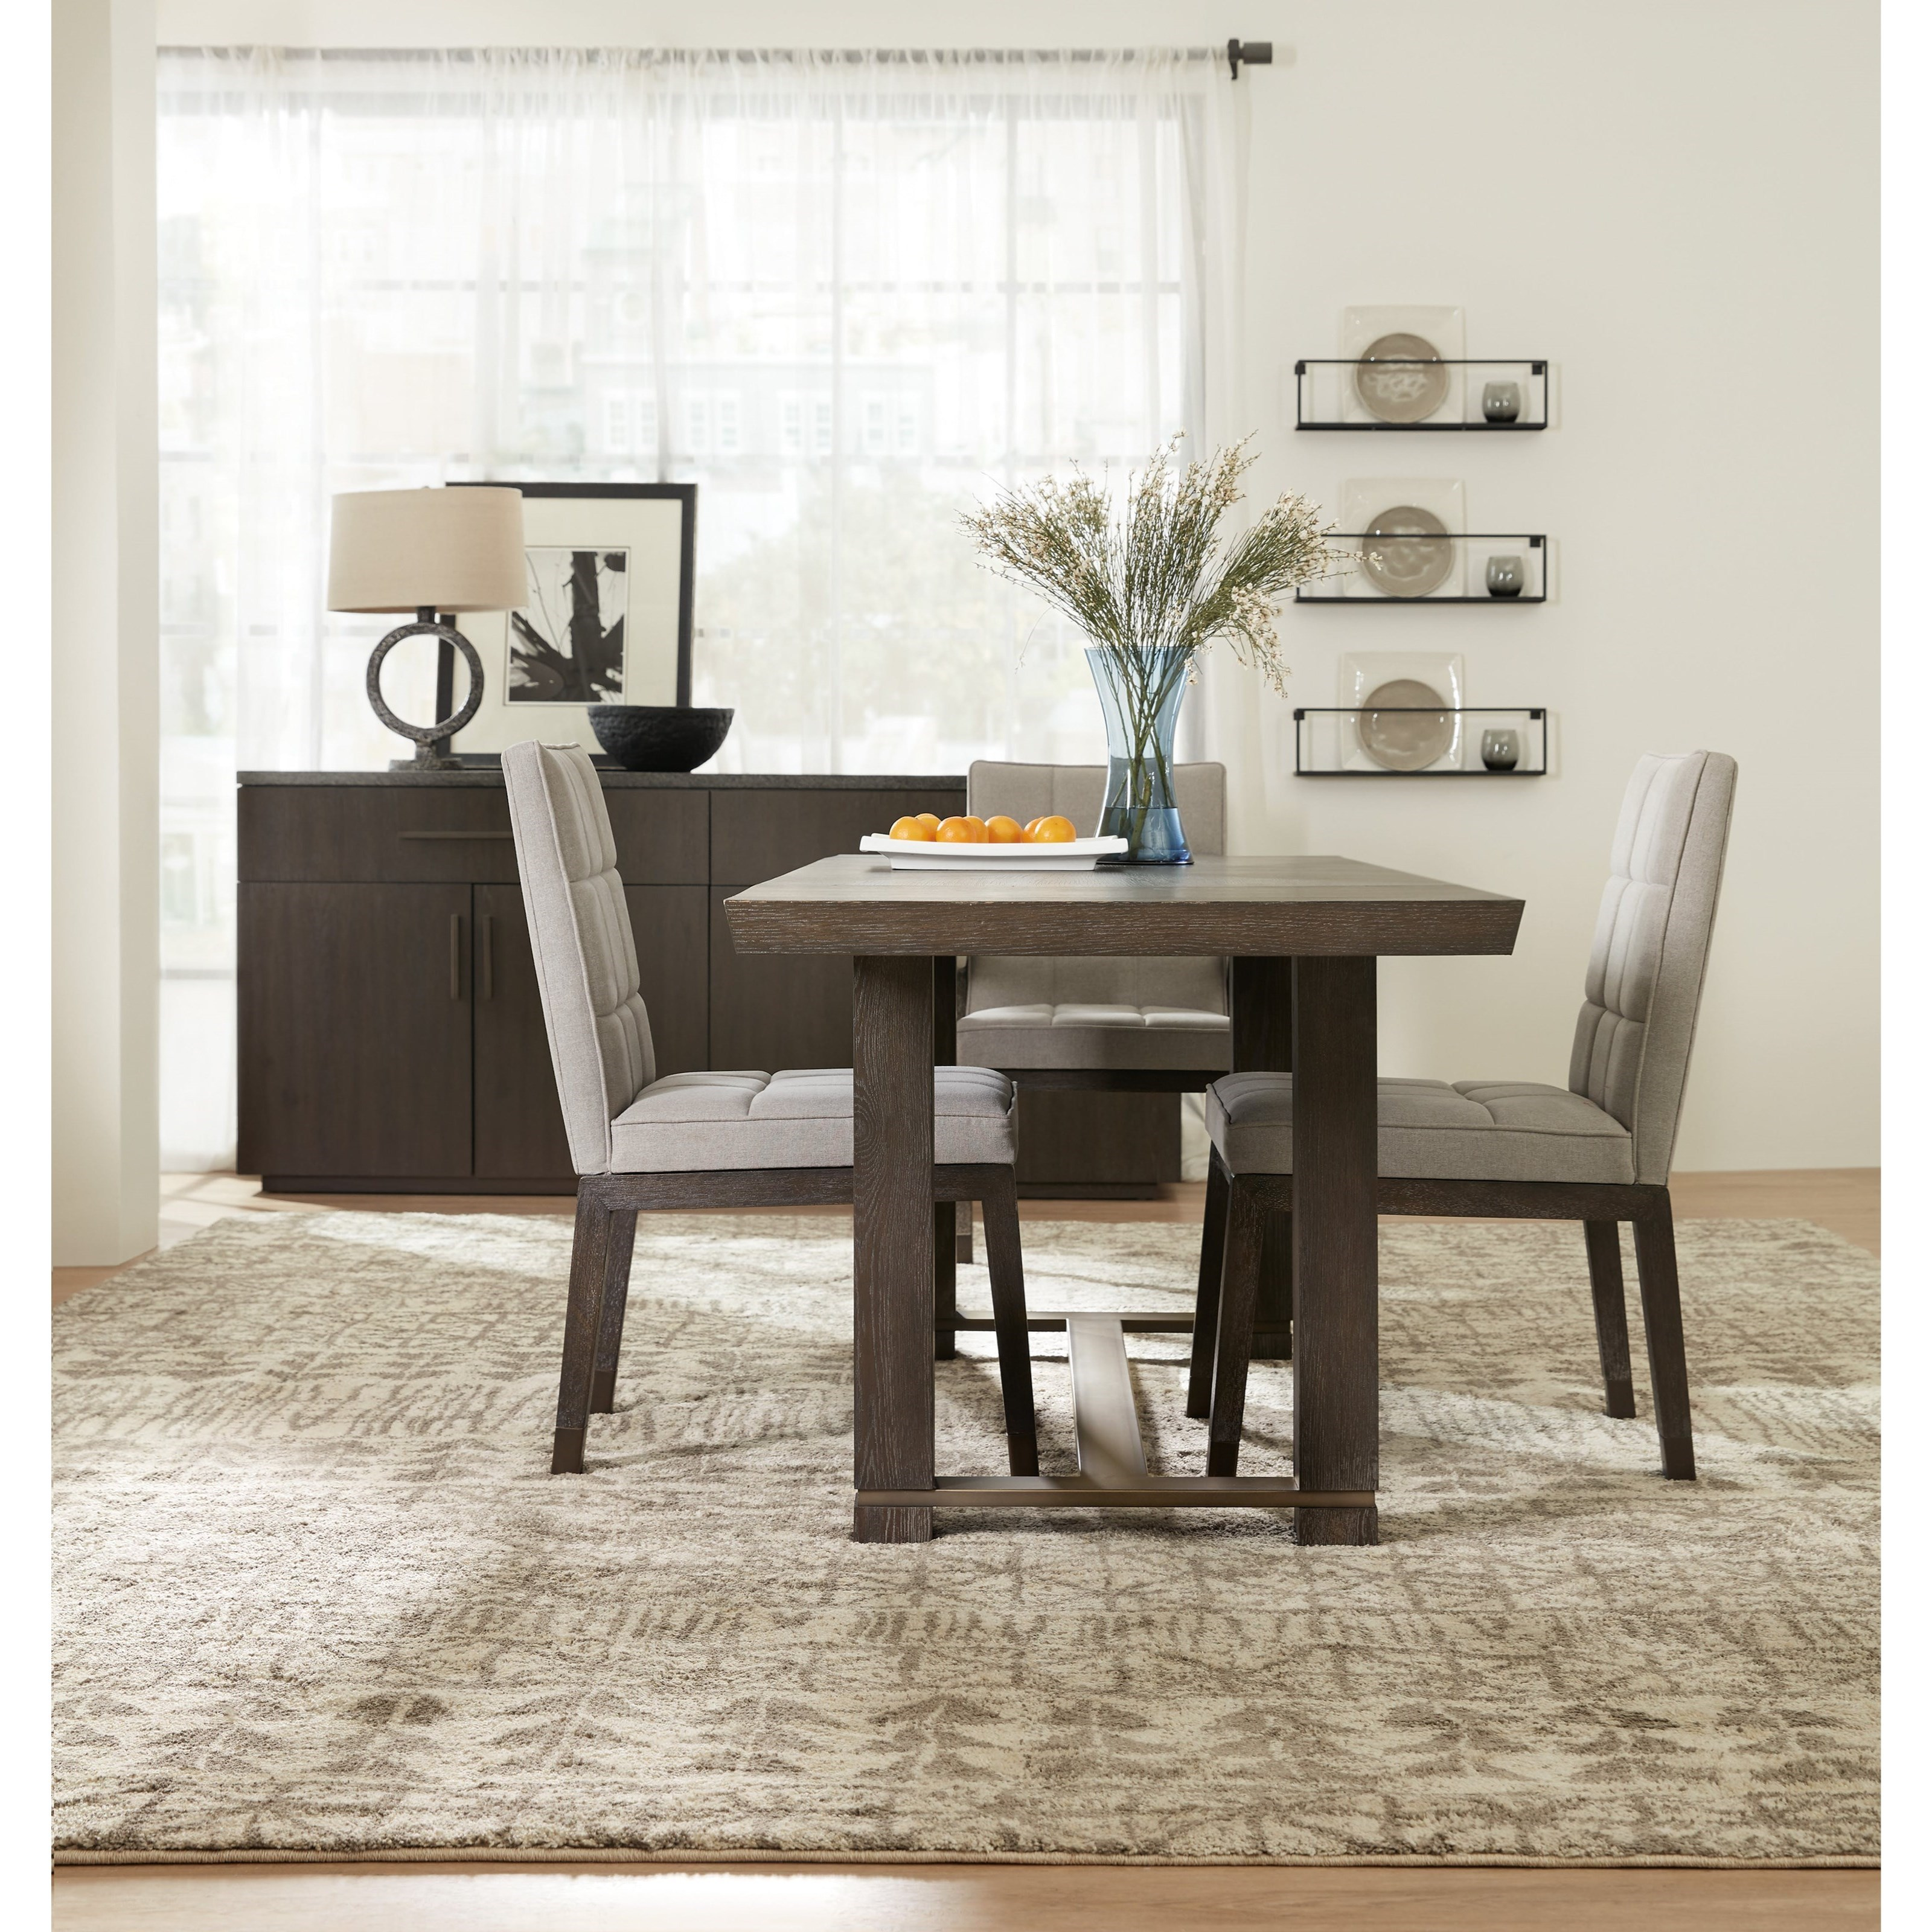 Casual Dining Room Furniture: Hooker Furniture Miramar Aventura Casual Dining Room Group